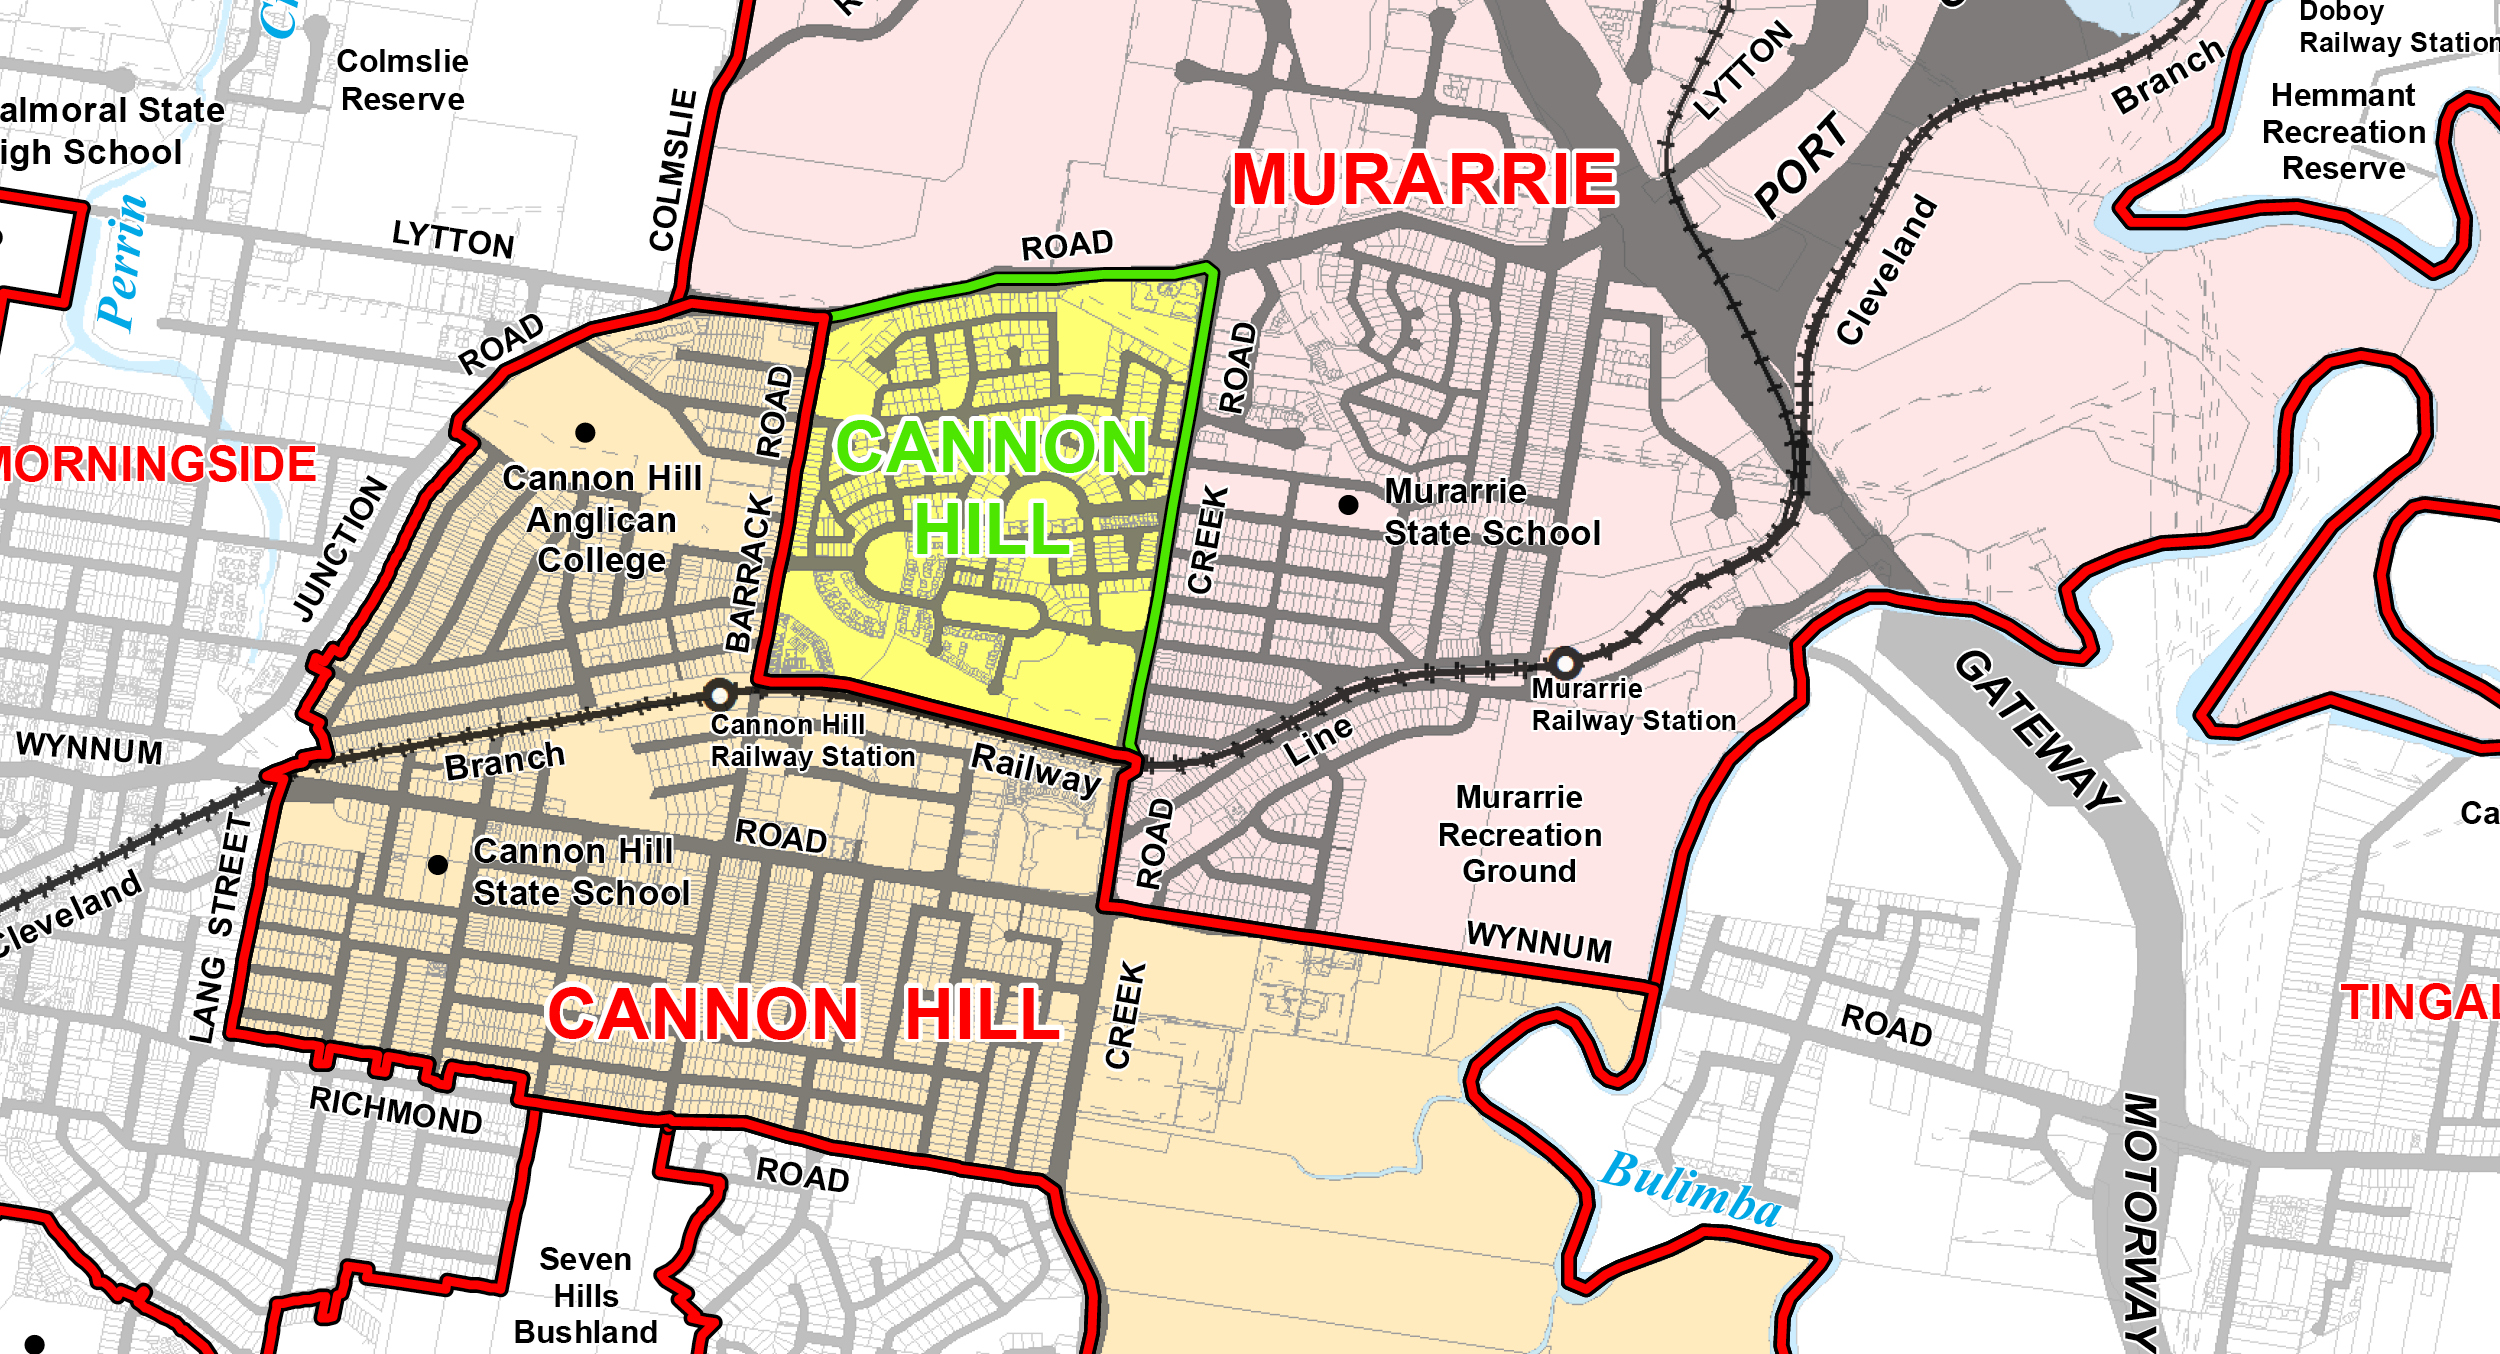 THE HIGHLIGHTED GREEN AREA OF MURARRIE IS PROPOSED TO BECOME CANNON HILL